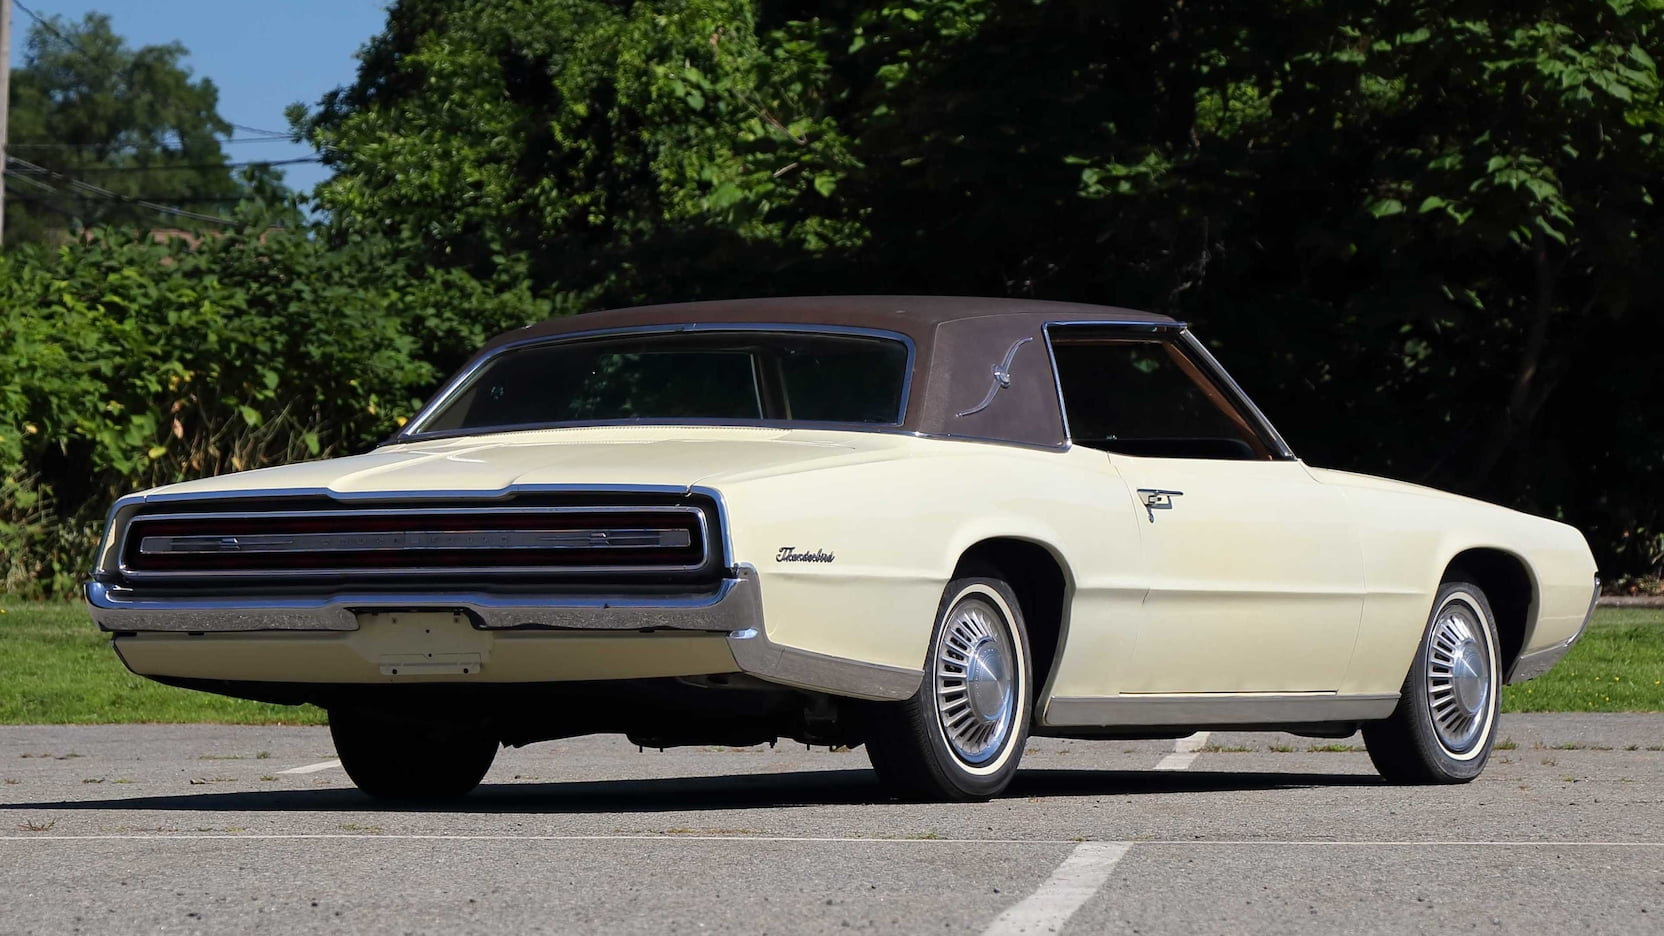 1967 Ford Thunderbird rear 3/4